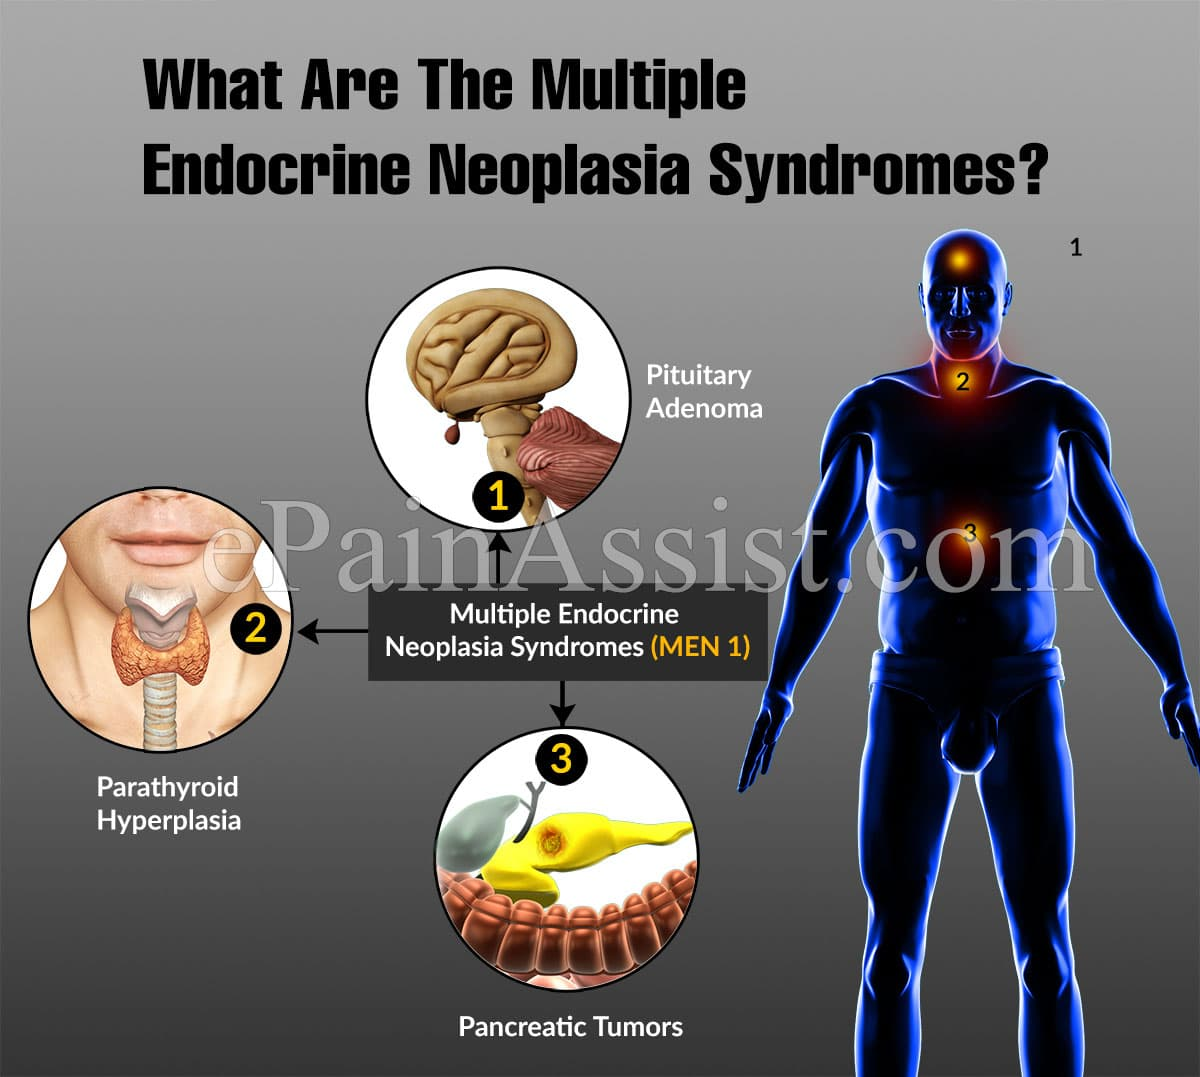 What Are The Multiple Endocrine Neoplasia Syndromes?